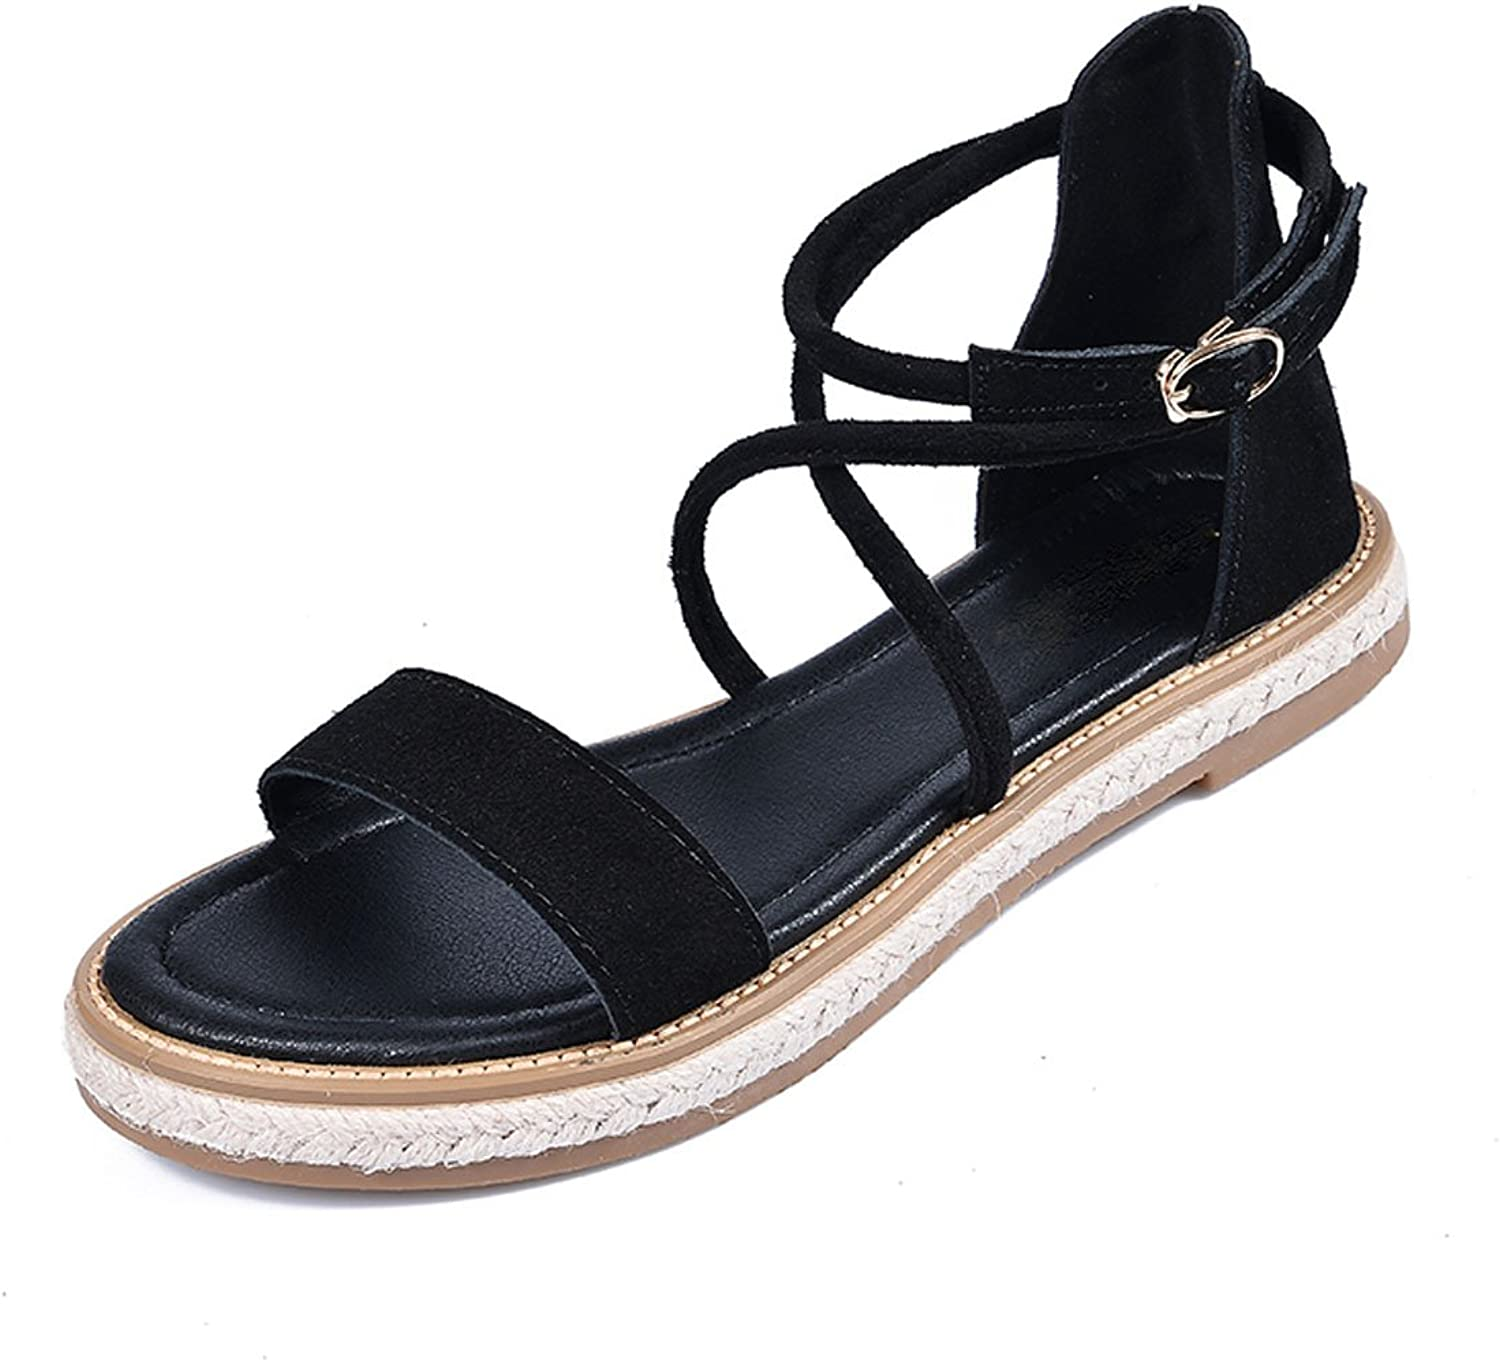 Gracosy Ankle Platform Fisherman Sandals,Women's Slim Ankle Straps Flat Cute Elastic Open Toes Sandals